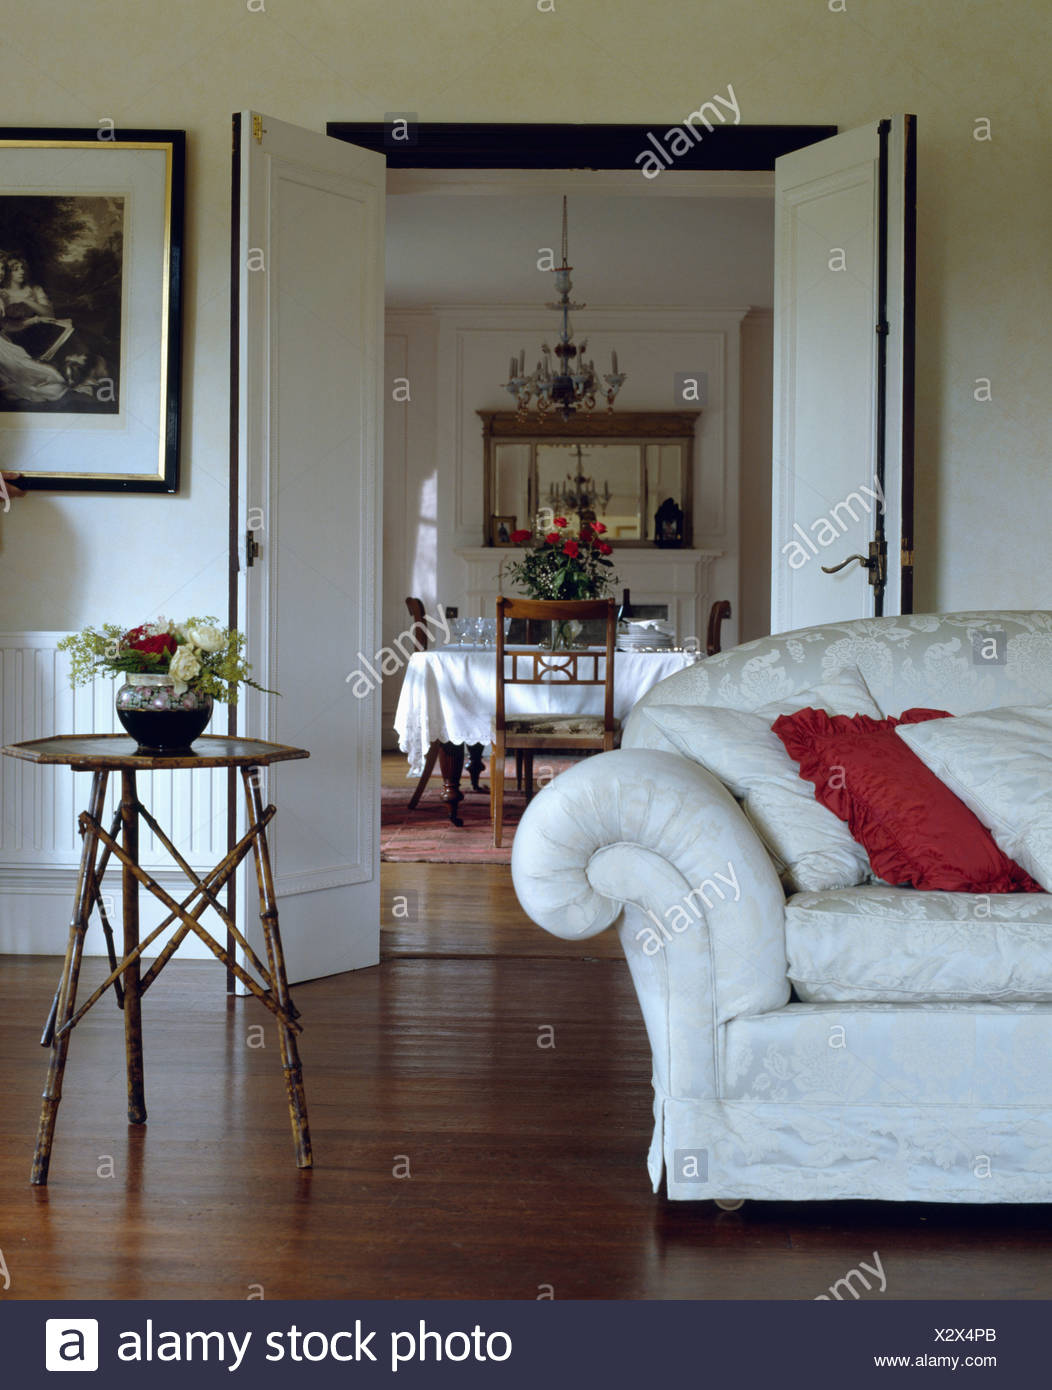 White Sofa And Small Bamboo Table In Living Room With Wooden Floor Double Doors Open To Dining